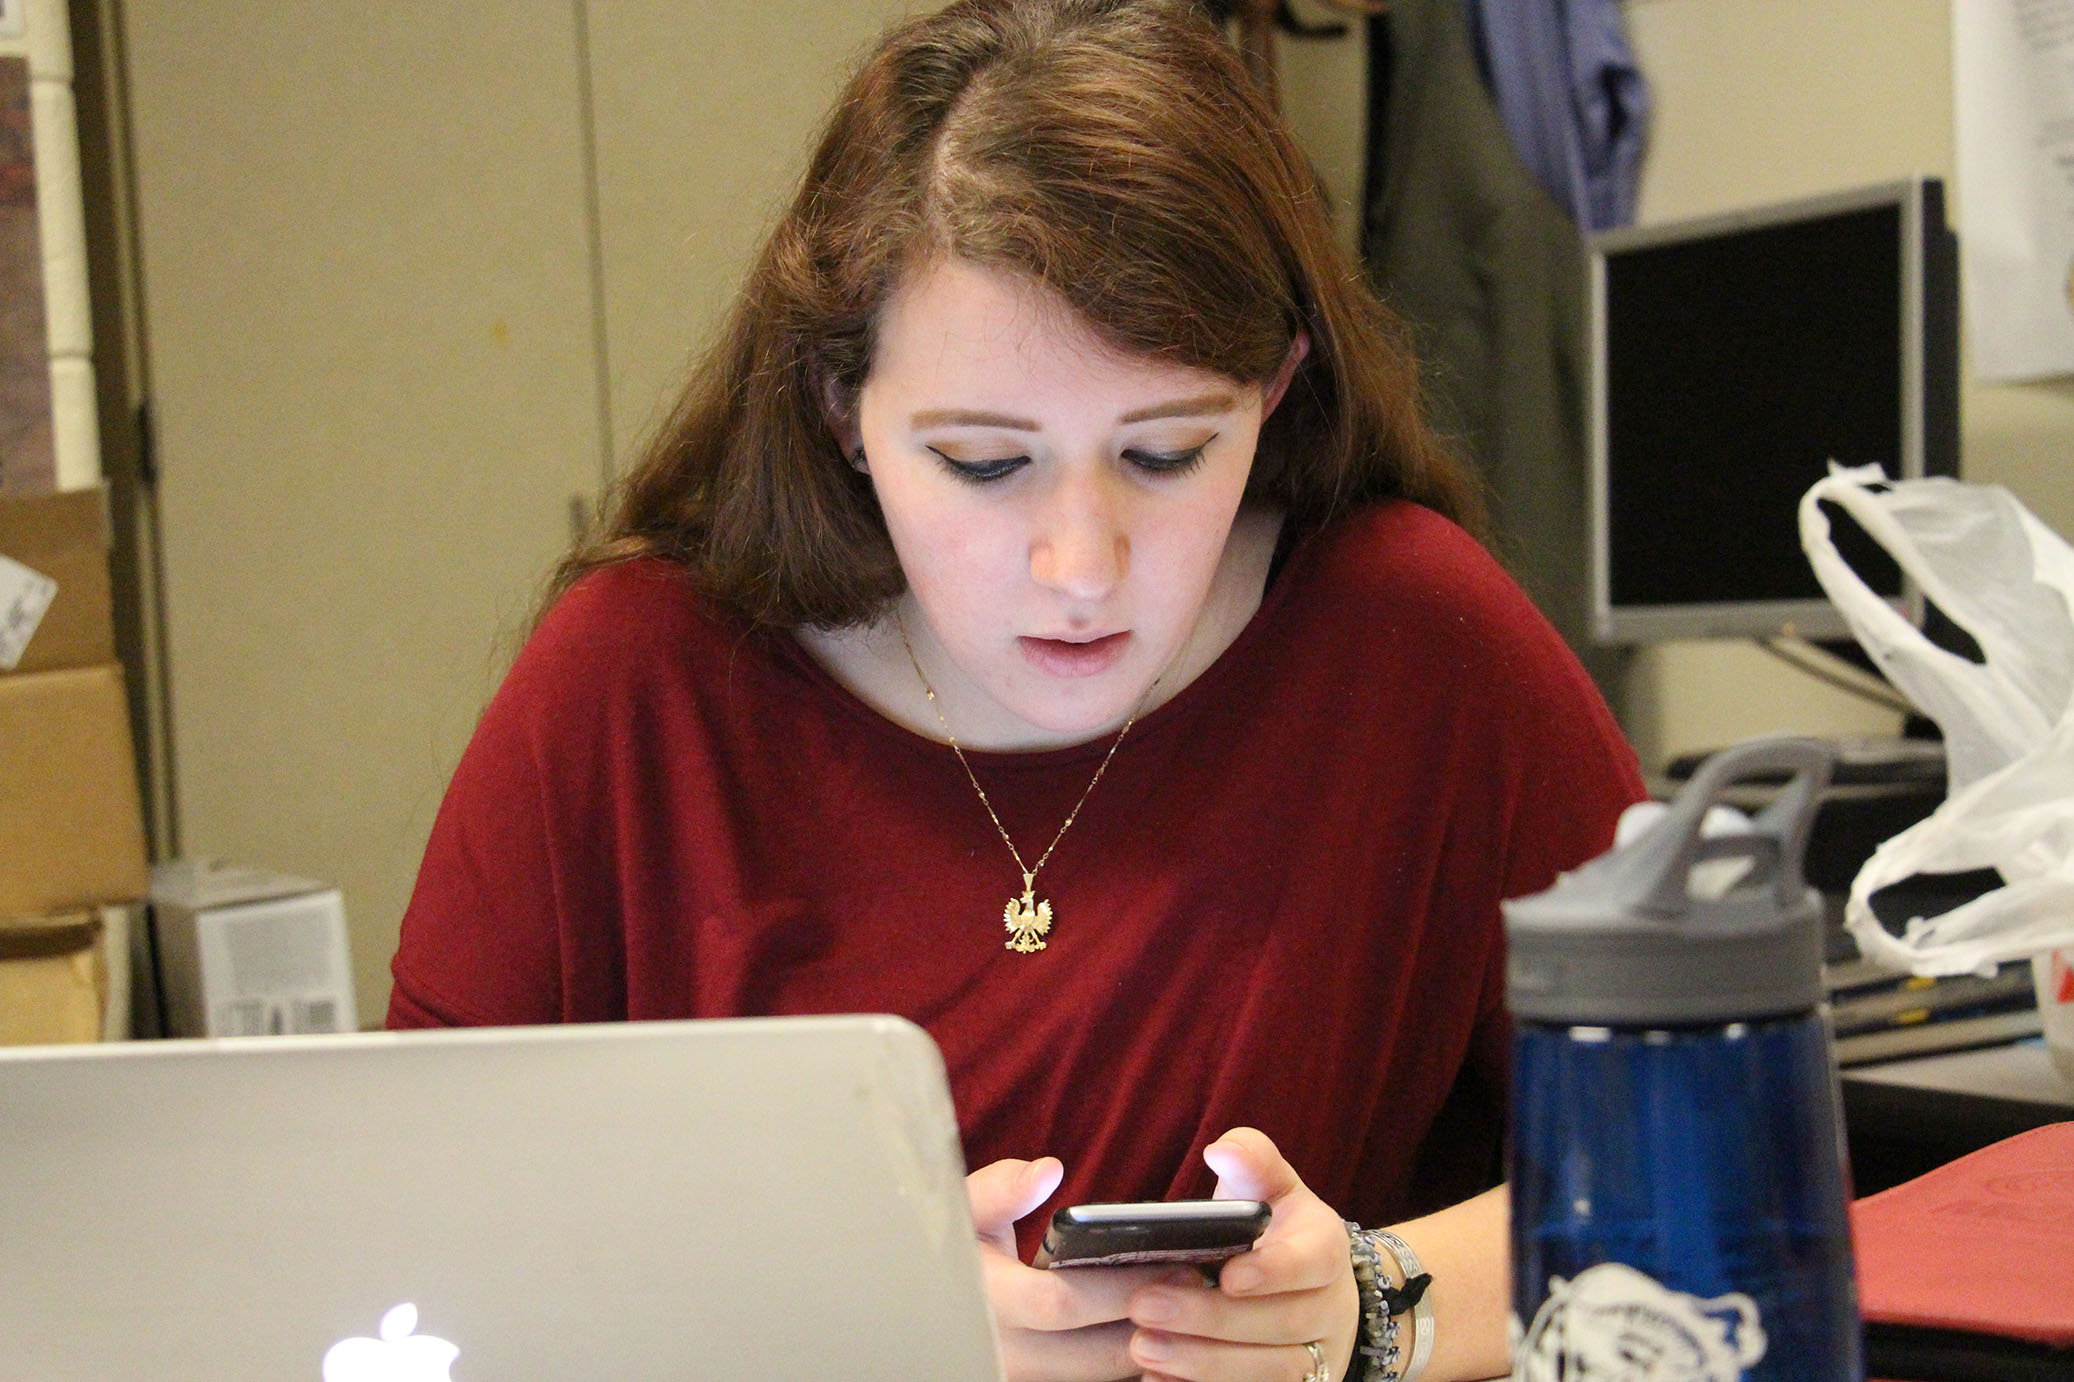 Senior Shelley Sawyer is on her phone, with a little bit of free time at the end of class Shelley sends a text. Shelley's phone provider is AT&T. Shelley sends about 100 text in a day.